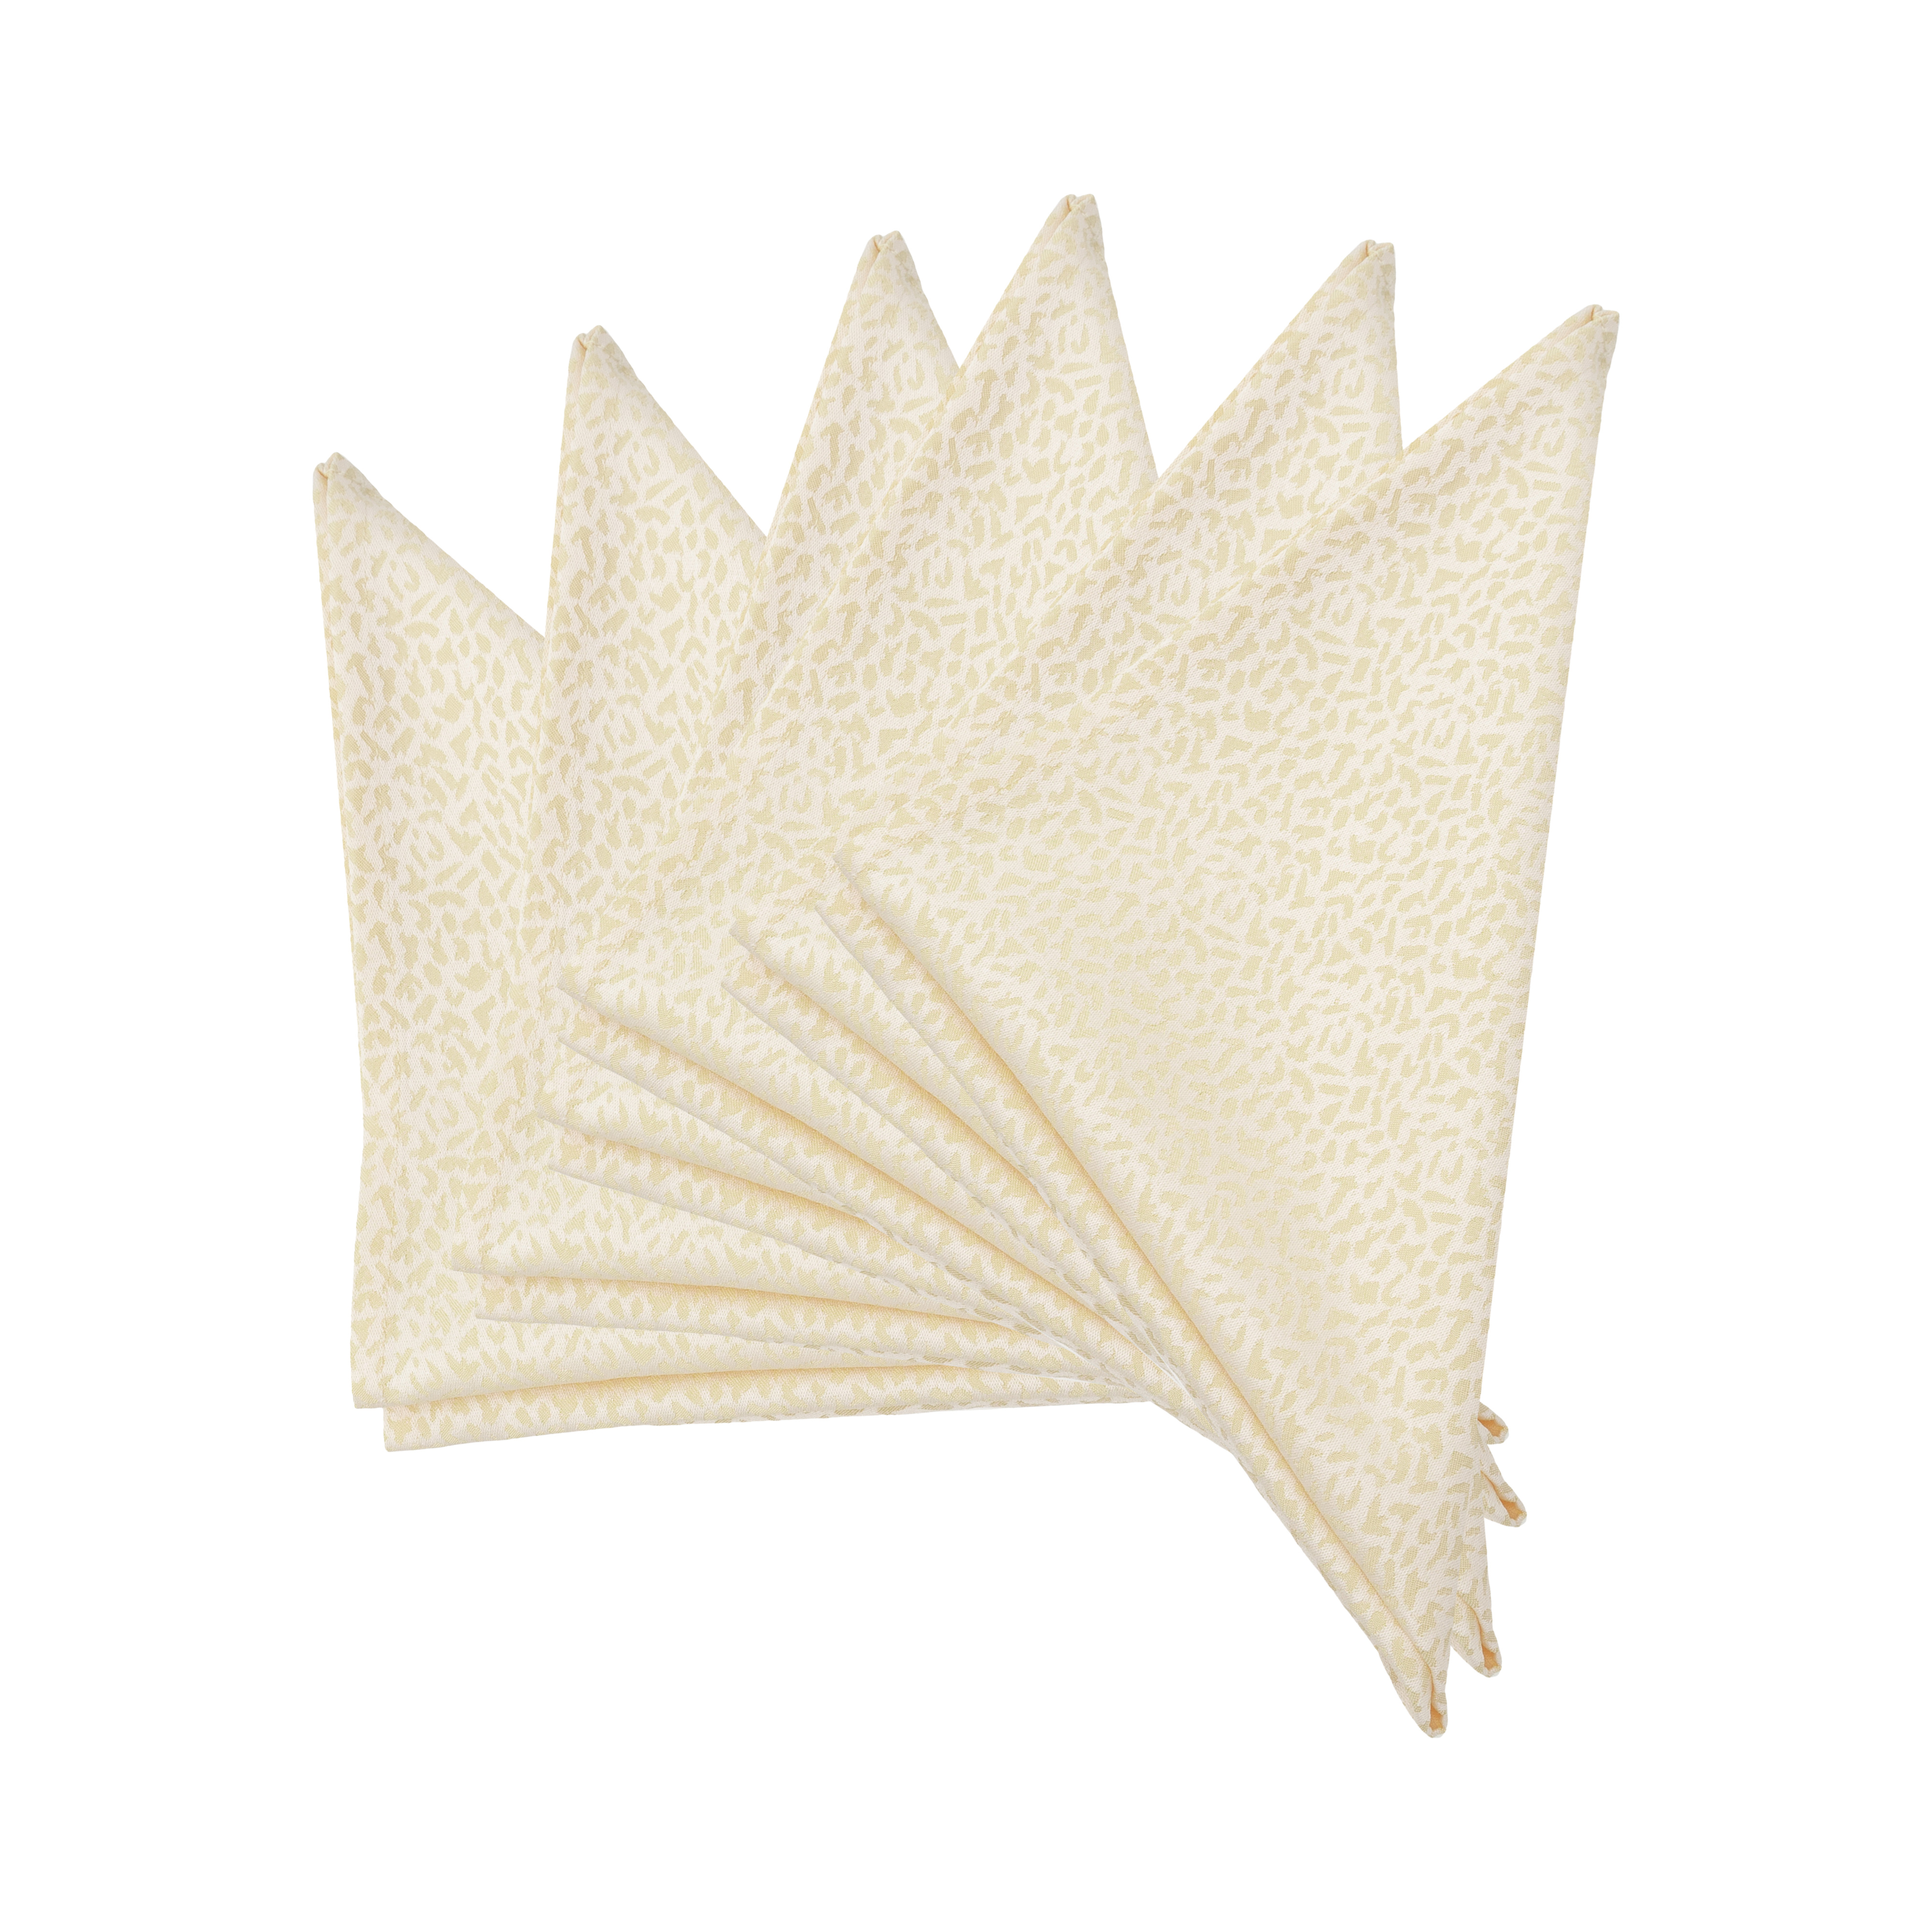 """Small Marble Damask Polycotton Table Napkins/Fabric Serviette Napkins 51x51cm/20x20"""". Pack of 2,4 or 6 (Ivory)"""